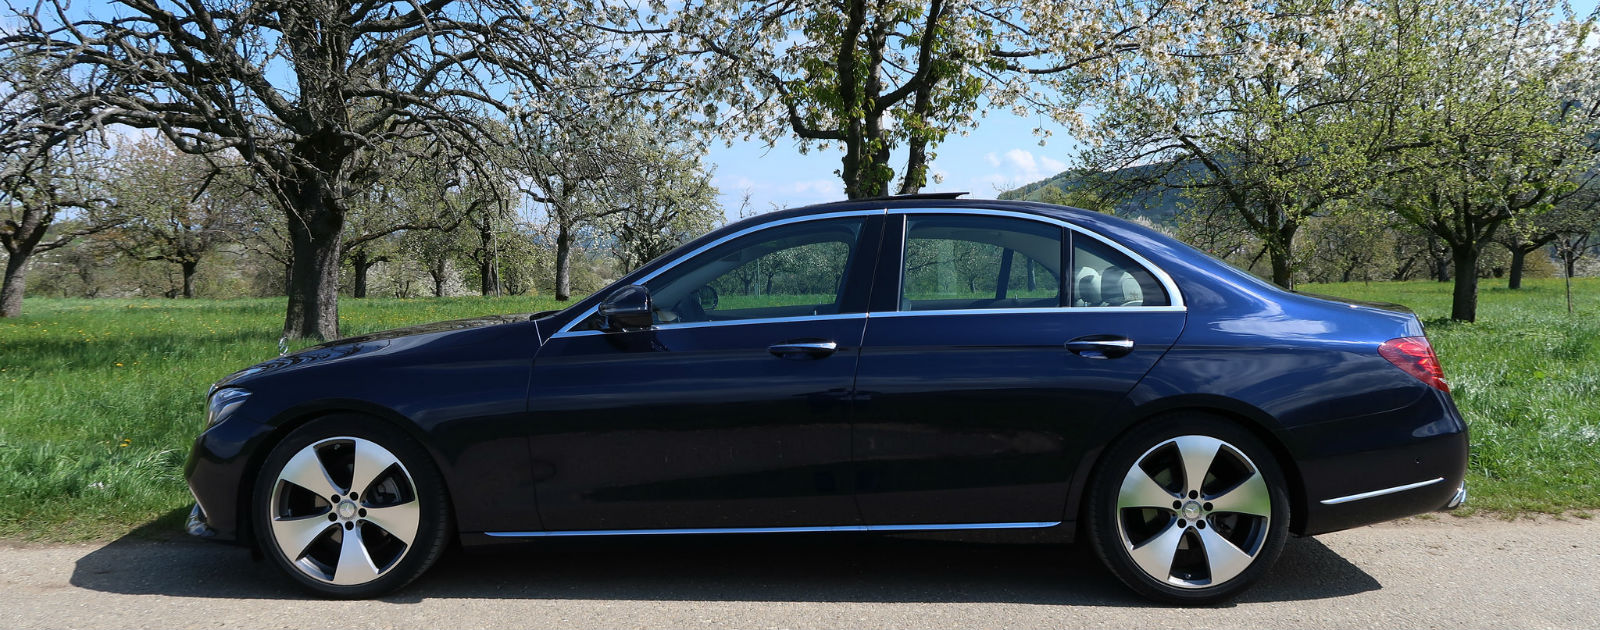 Mercedes E Foto: GillyBerlin, https://creativecommons.org/licenses/by/2.0/